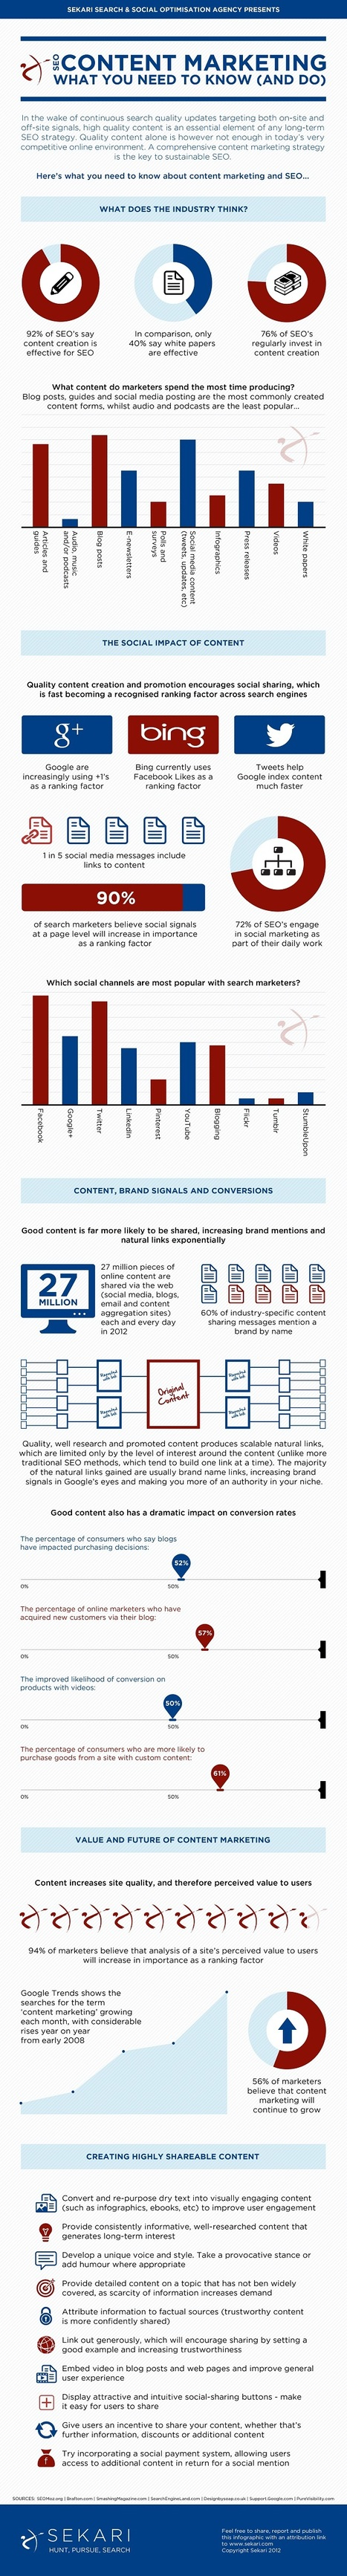 The Importance of Content Marketing When Building SEO Strategies [Infographic] | Neli Maria Mengalli's Scoop.it! Space | Scoop.it